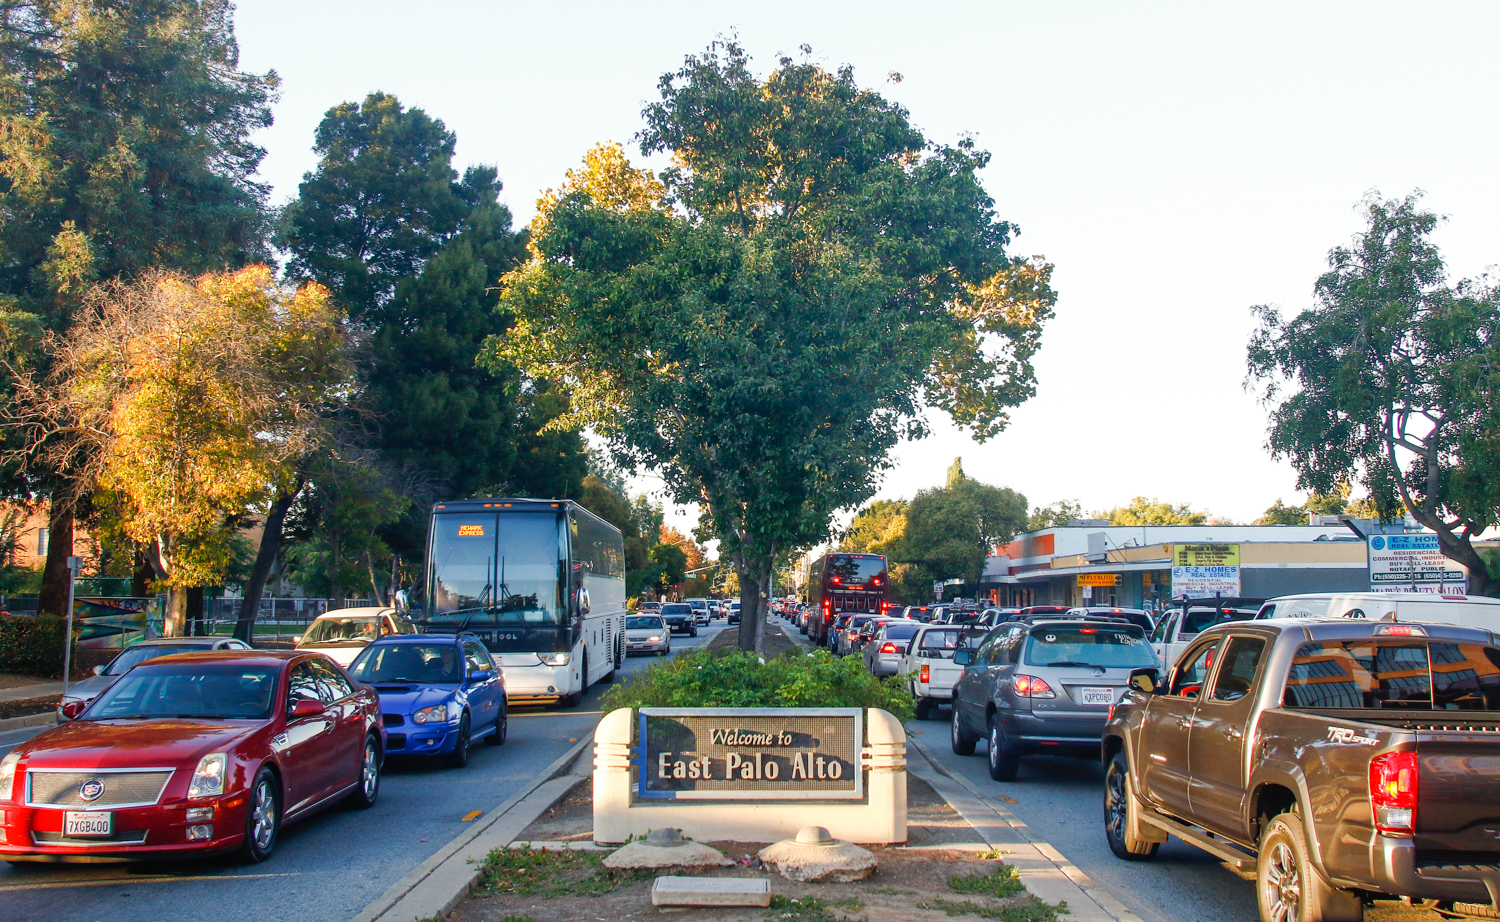 Traffic is lined up heading east and weston University Avenue in East Palo Alto during the rush hour. Photo by Veronica Weber.